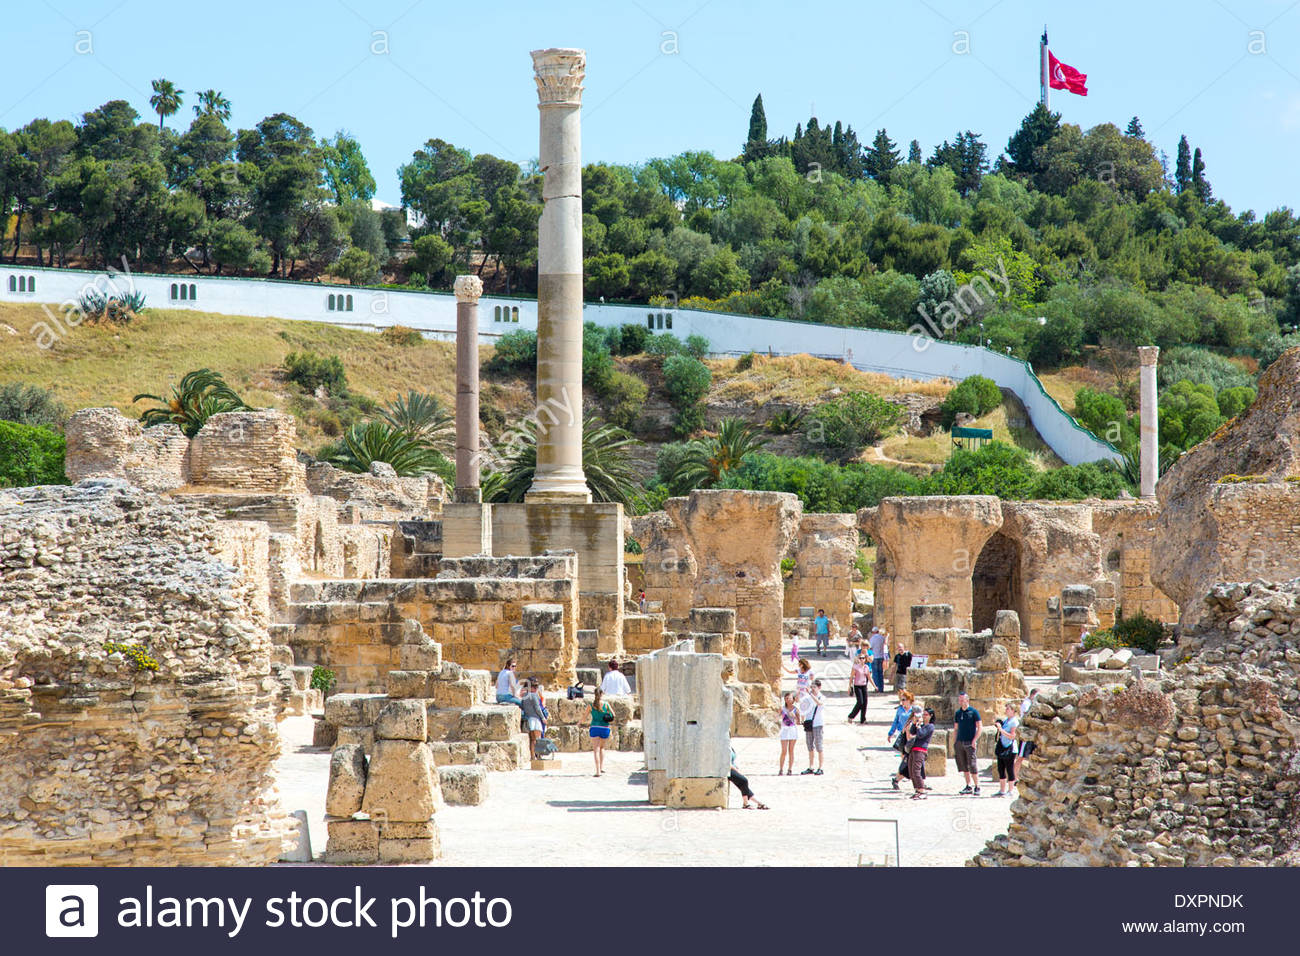 Carthage Tunis, Ruins of Carthage, Tunis, Tunisia Stock Photo, Royalty Free Image ...